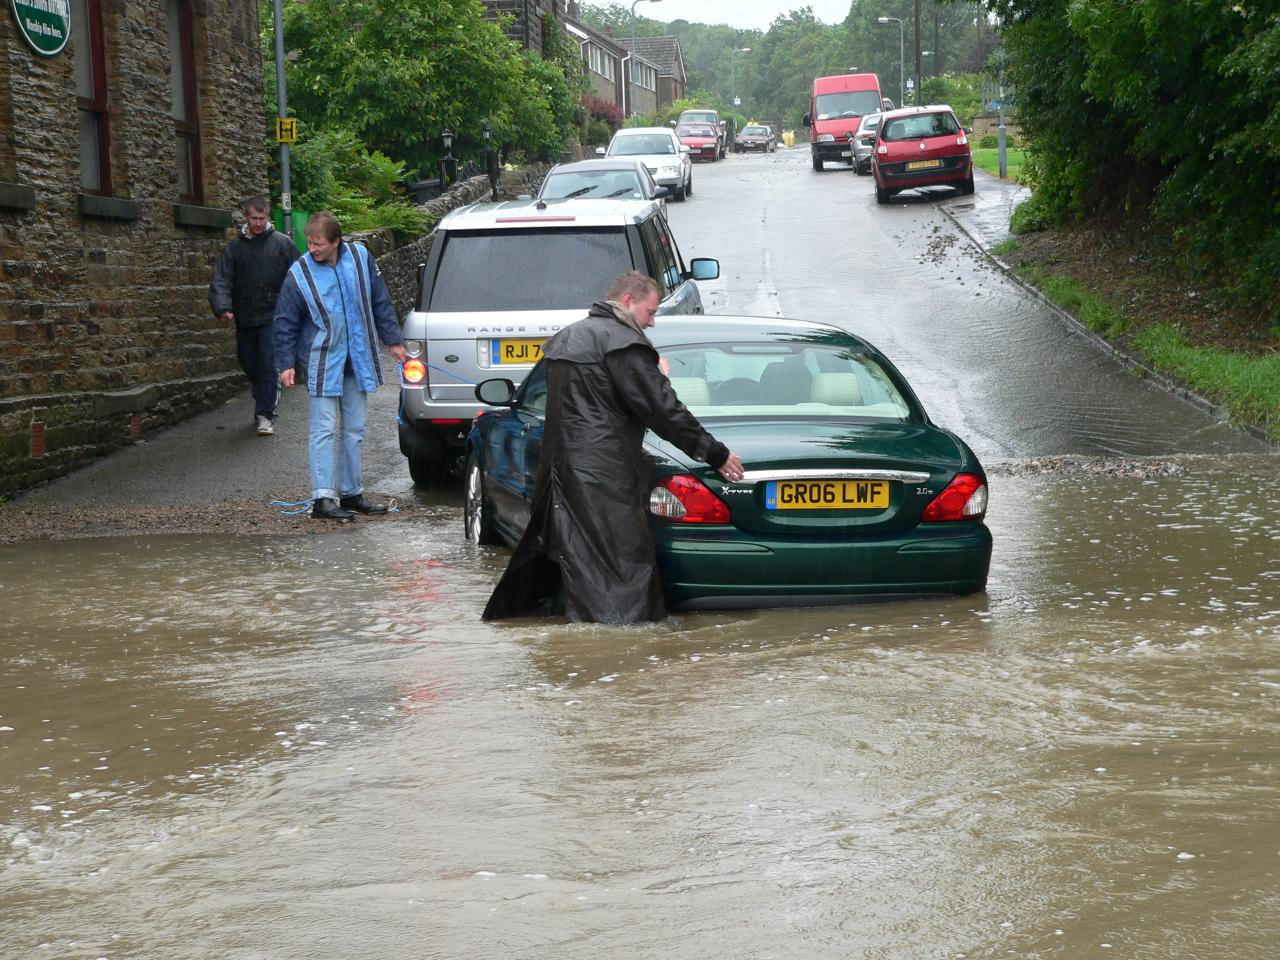 Torrential rainfall in South Yorkshire on the 25th June 2007 led to the beck flooding in the afternoon. Photograph by Wendy North.